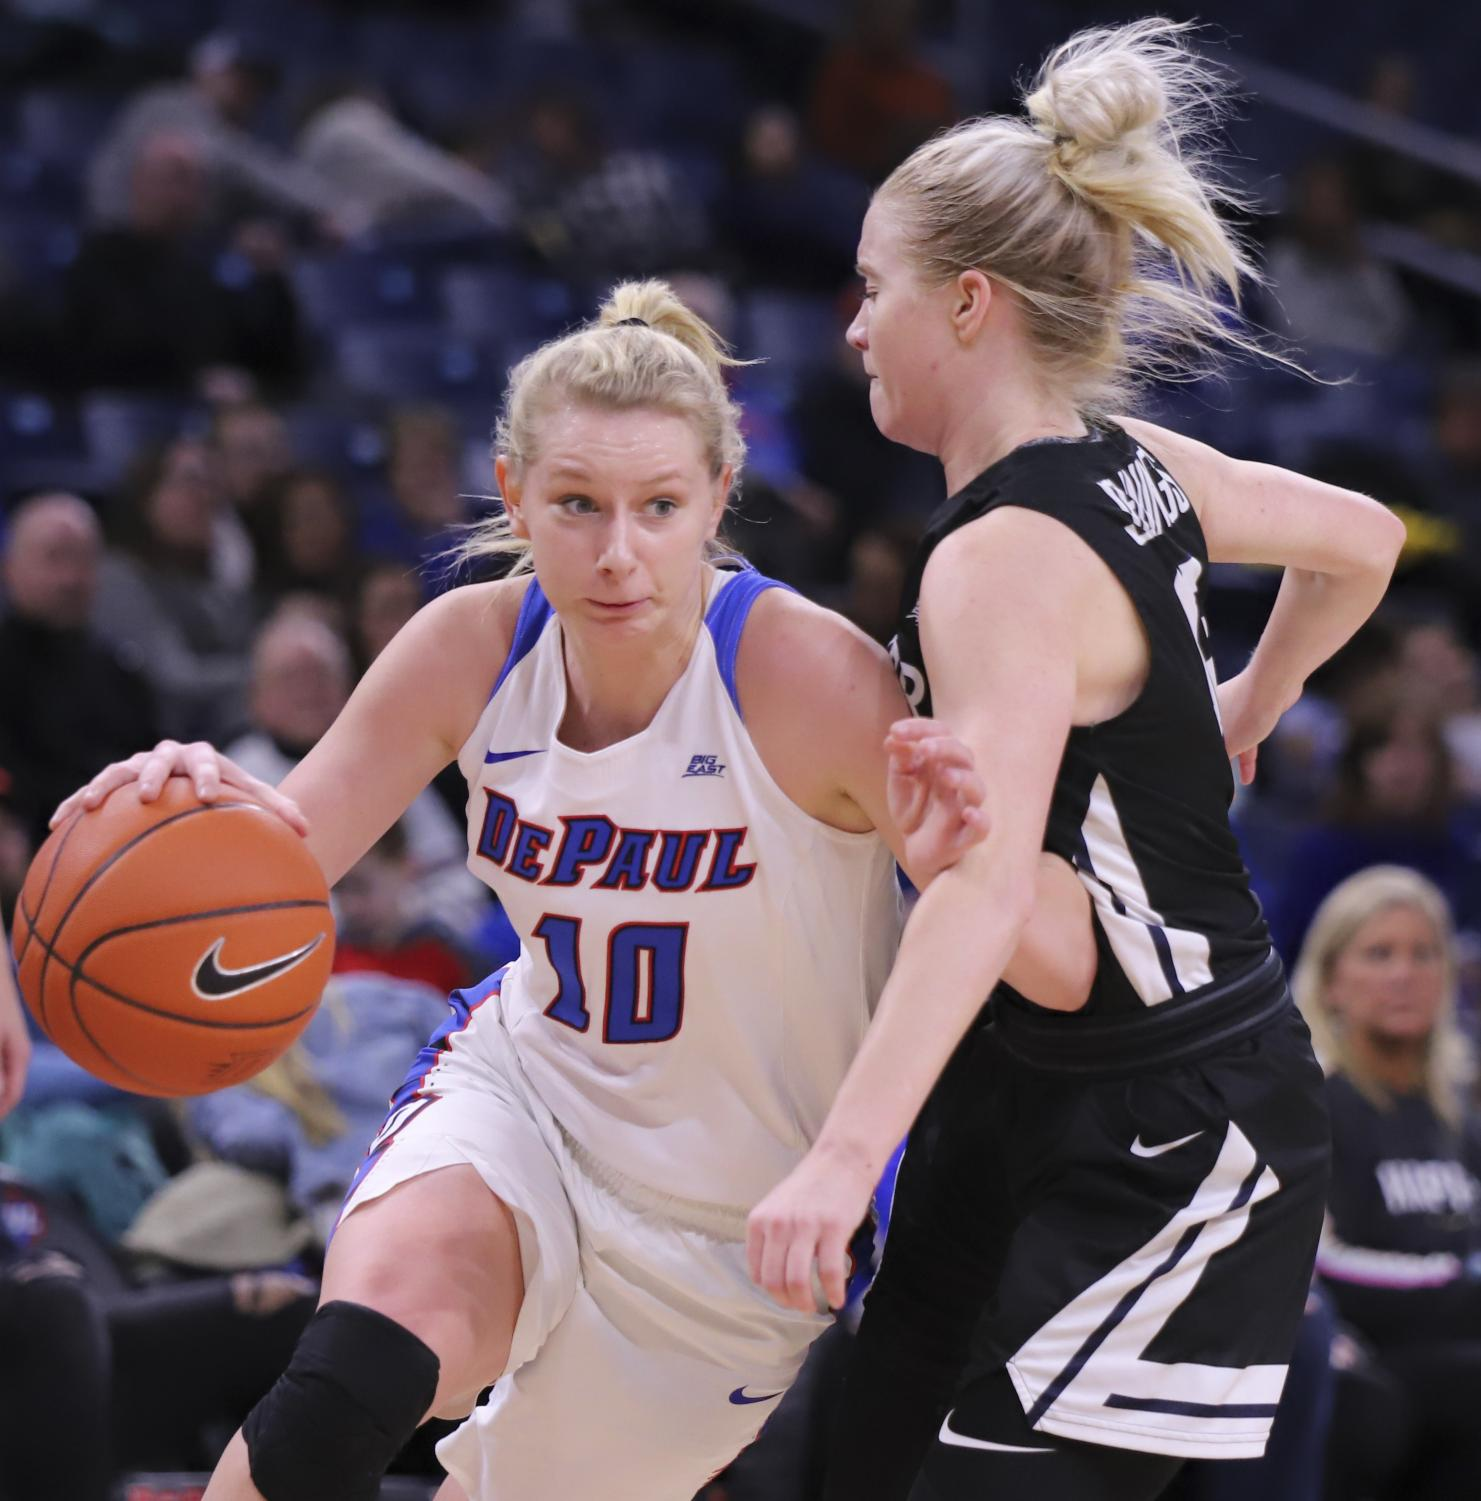 DePaul freshman guard Lexi Held drives to the basket against Butler's Whitney Jennings Sunday afternoon at Wintrust Arena. Alexa Sandler | The DePaulia